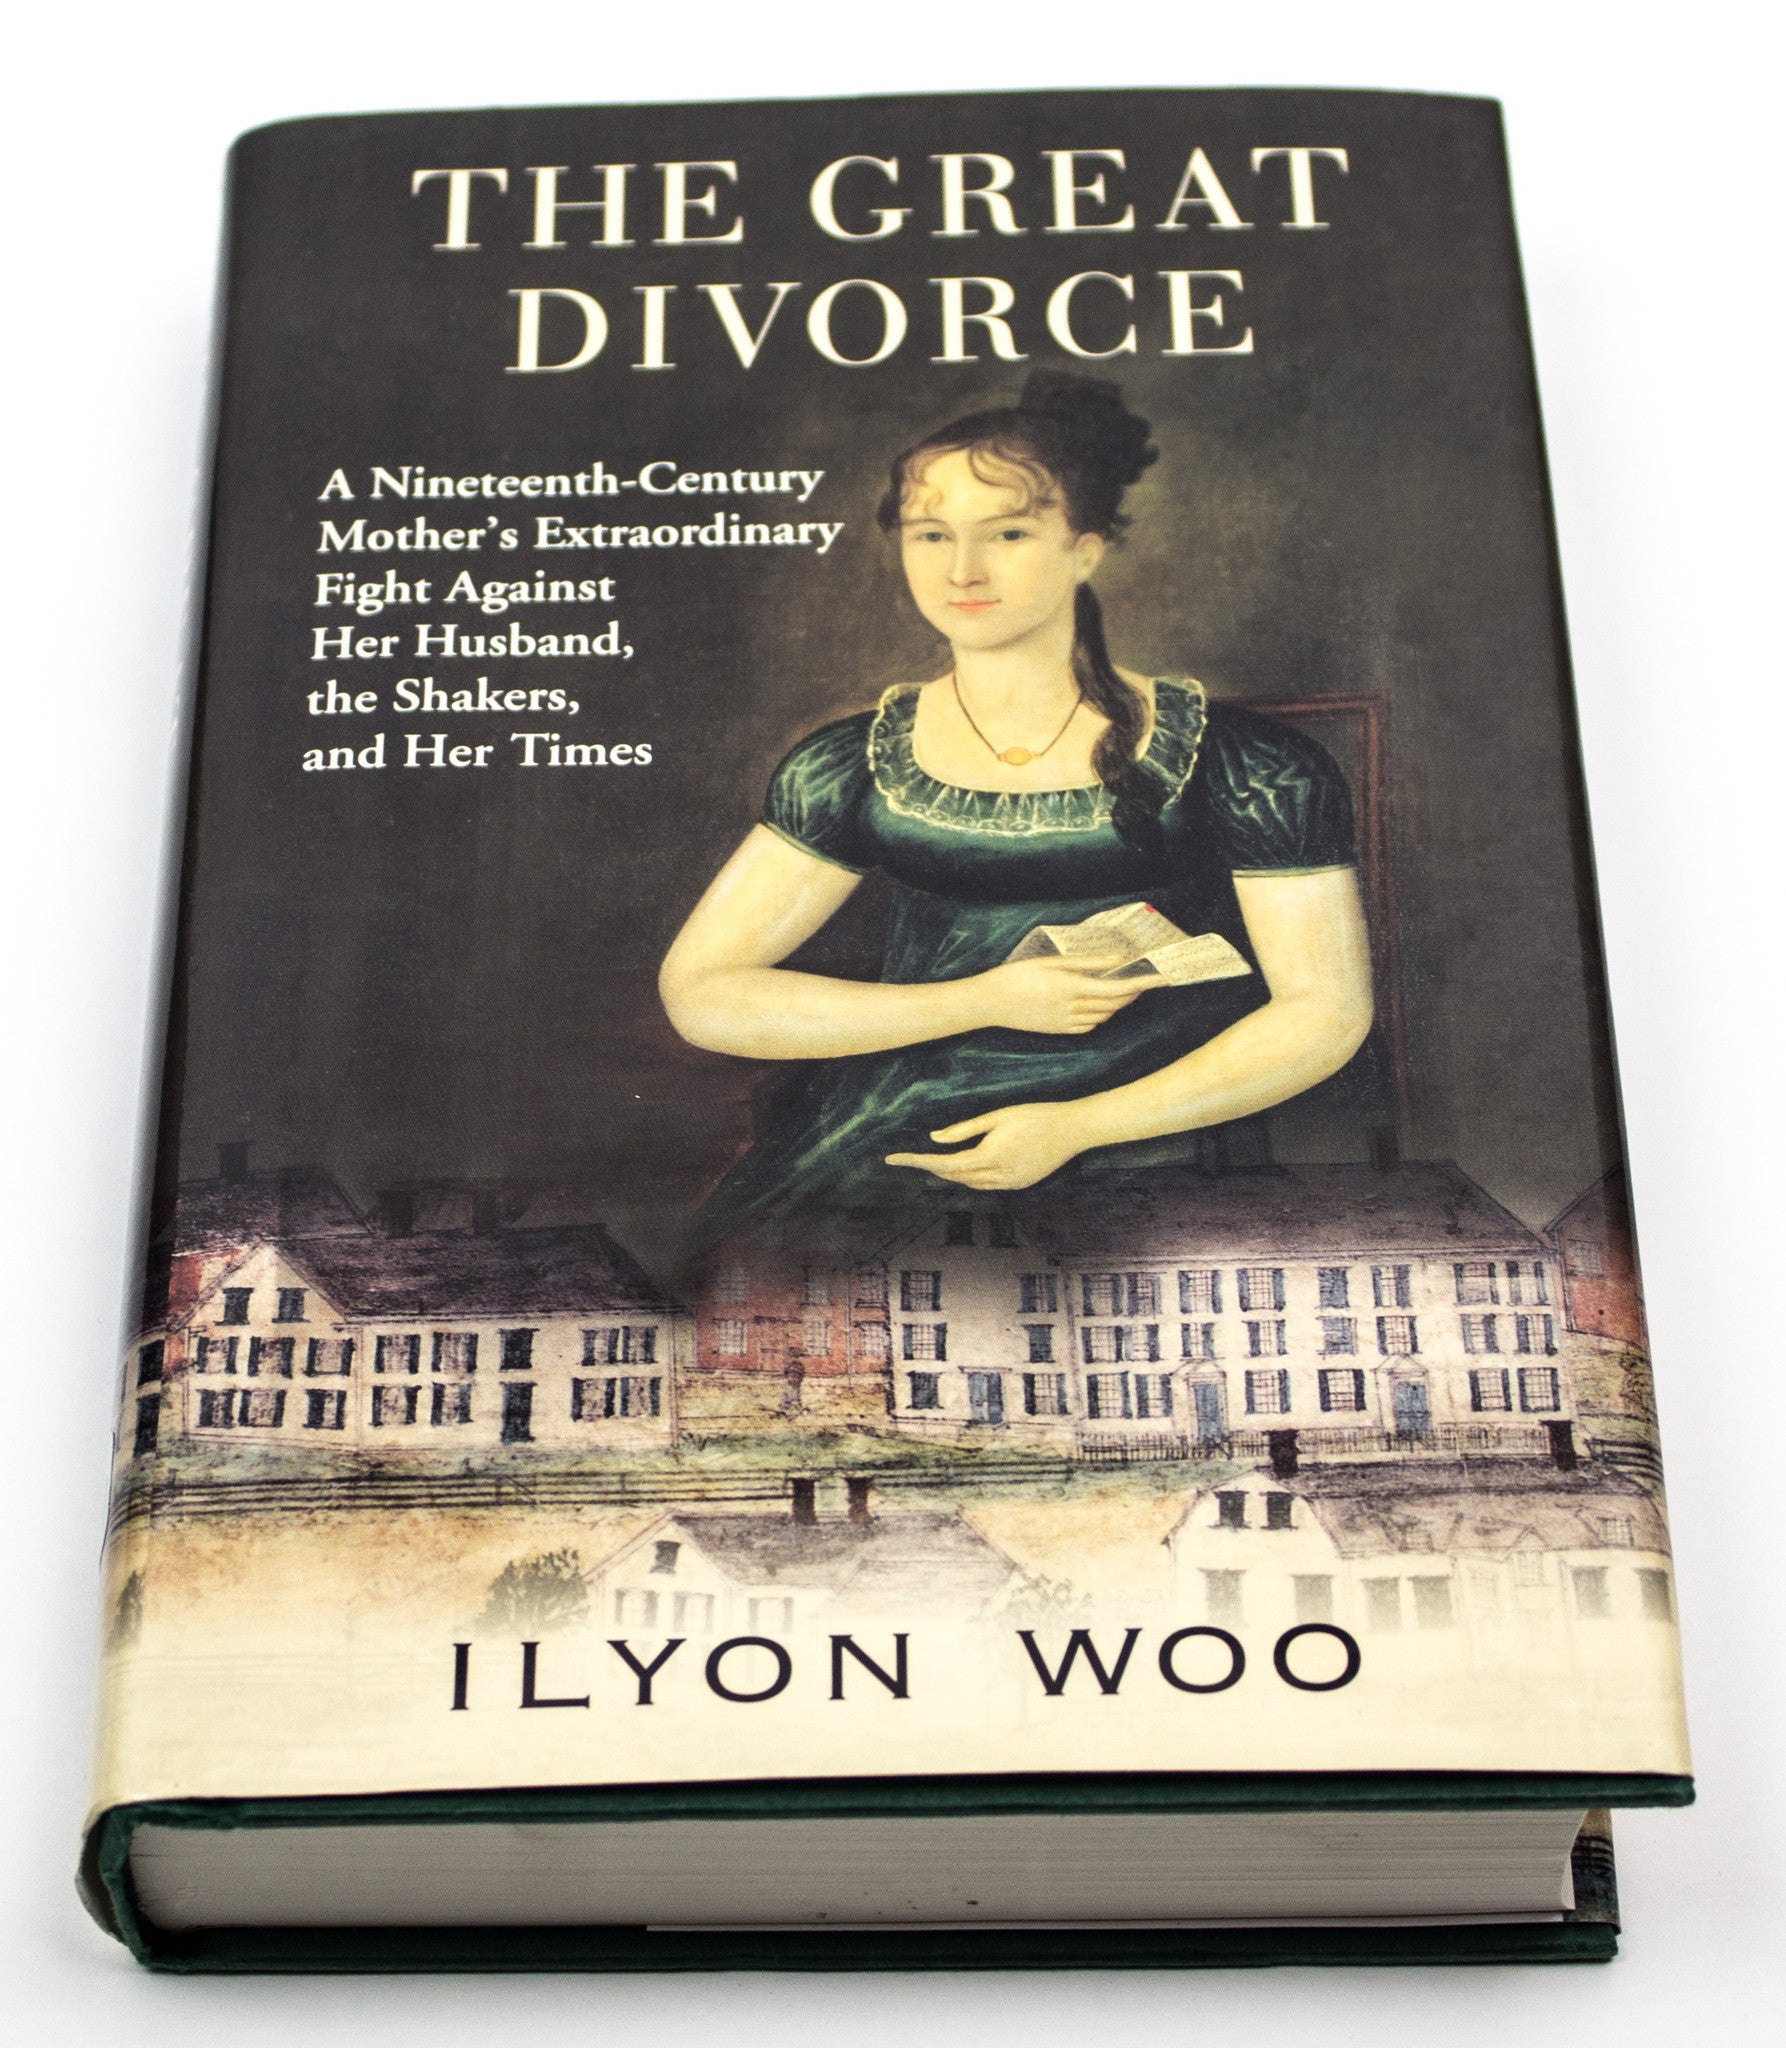 The Great Divorce (Hardcover)